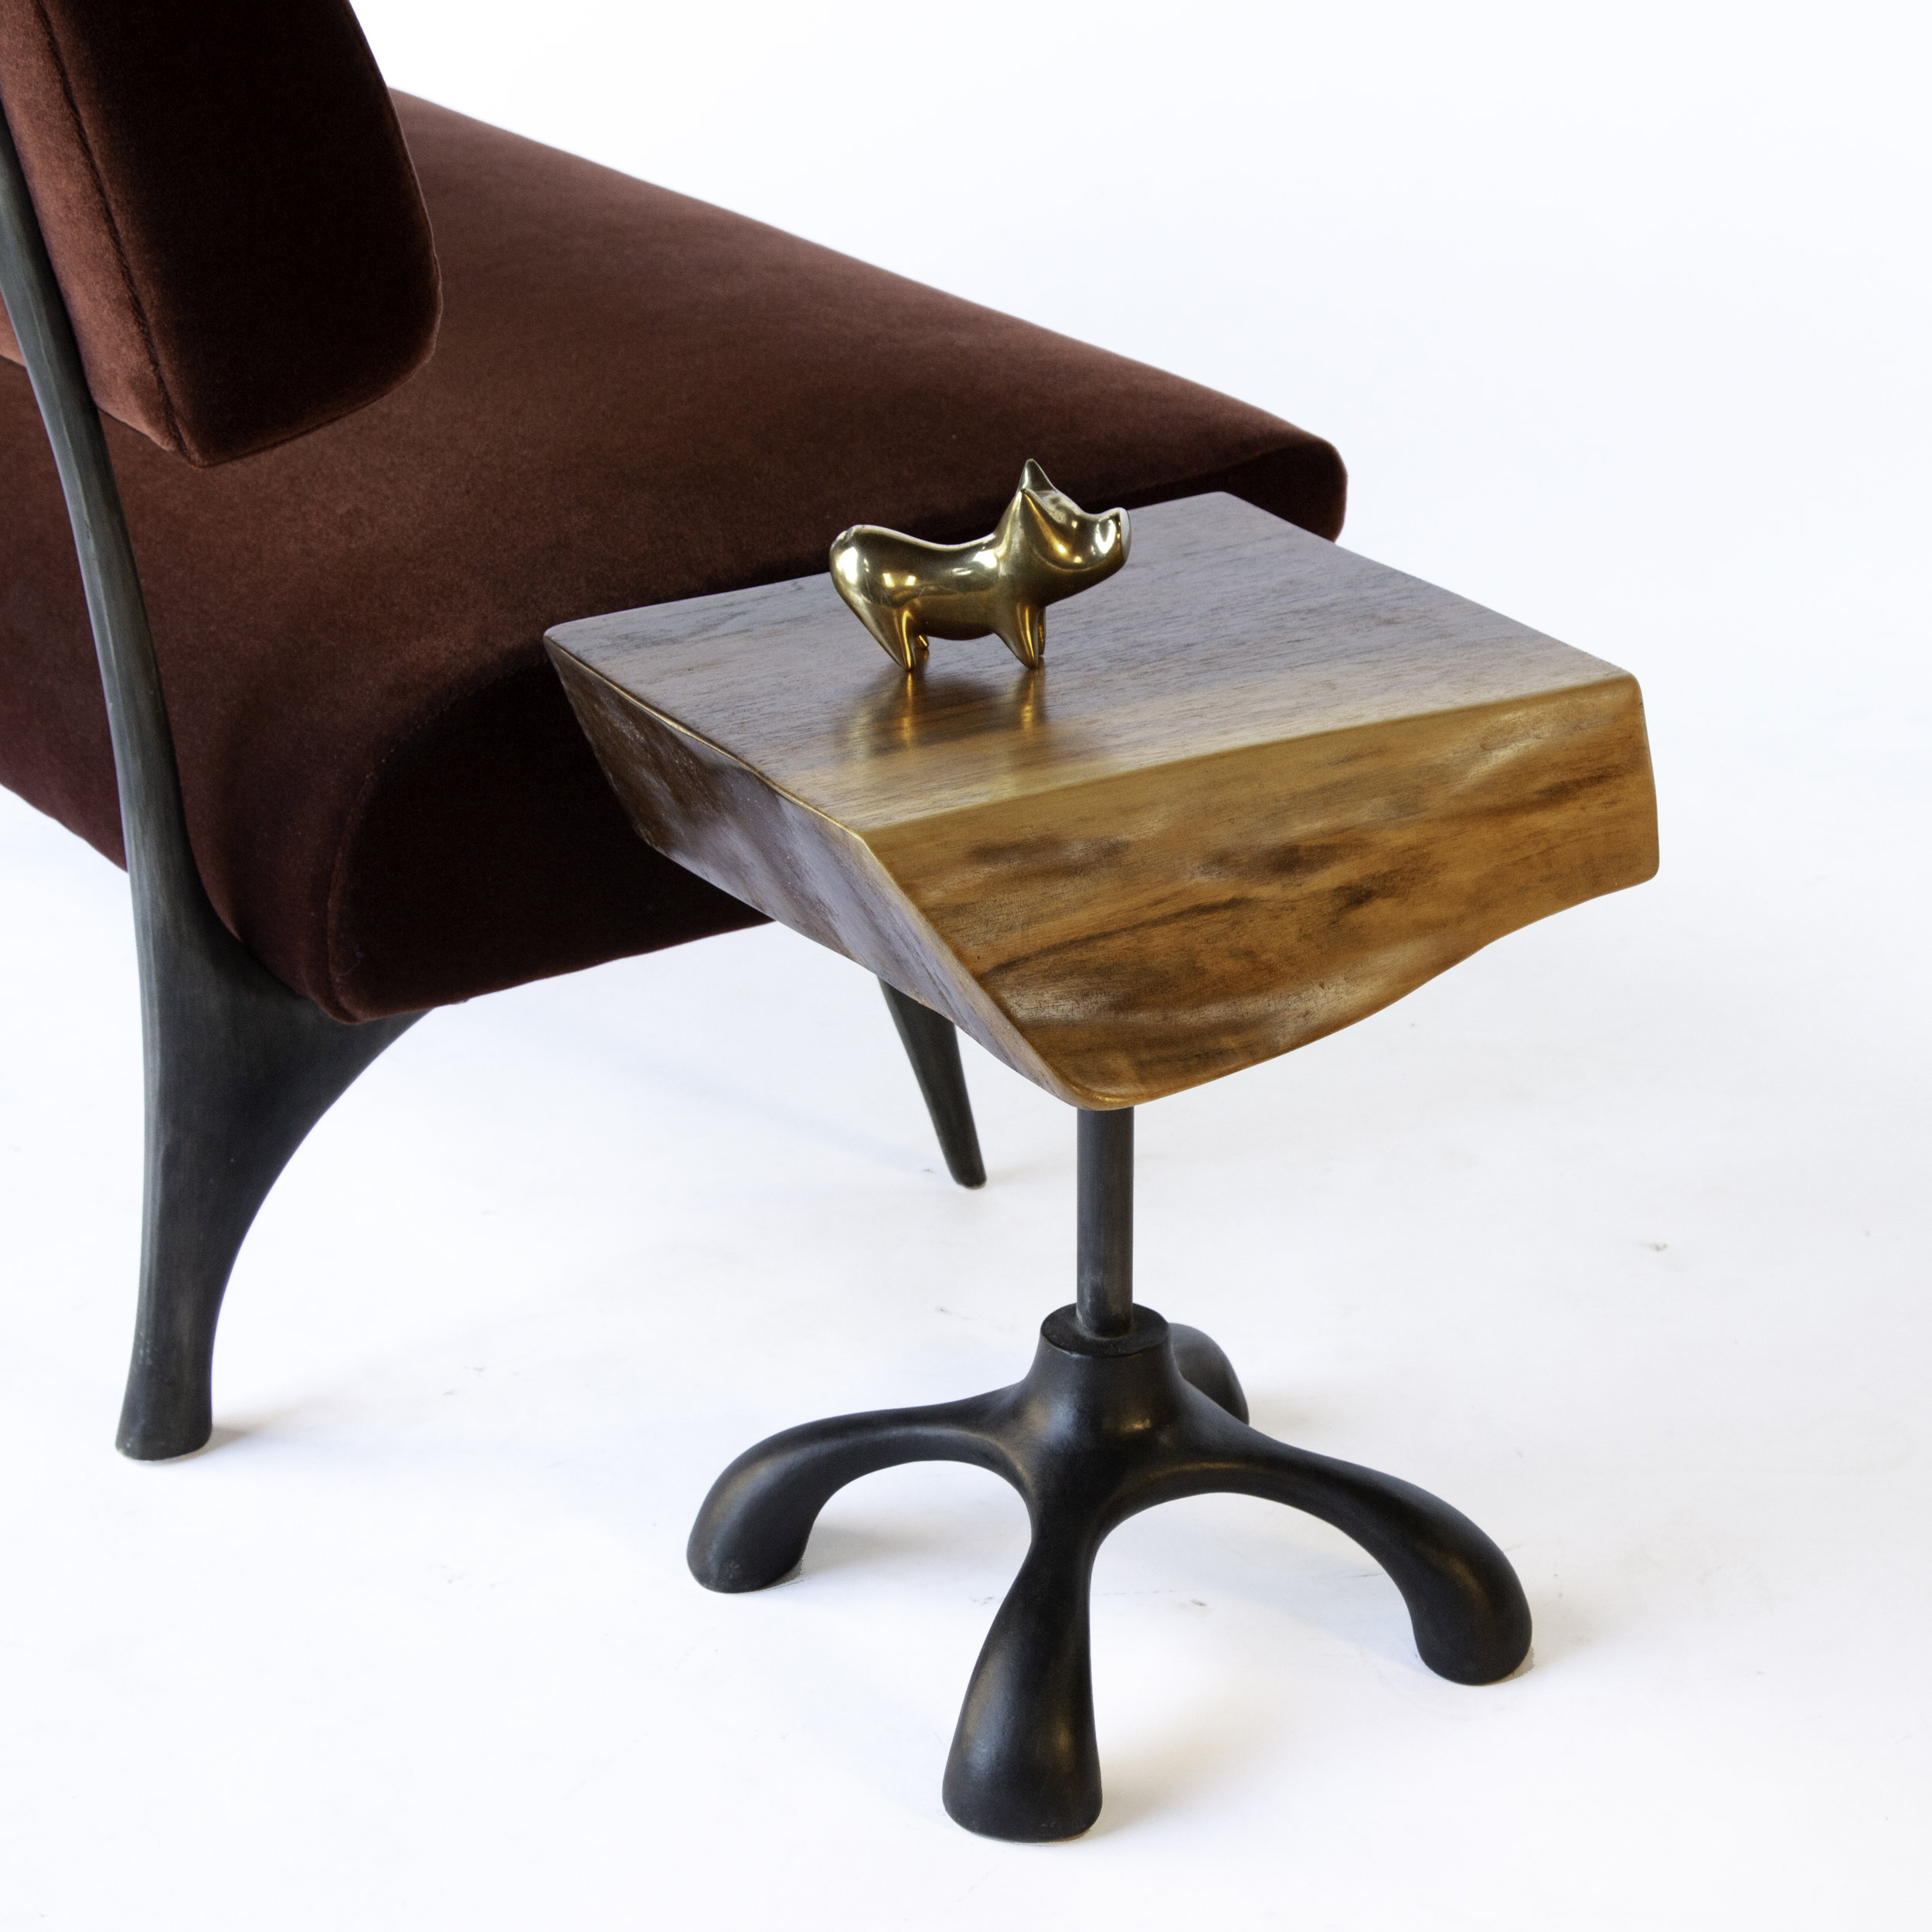 Chunk Table with Pig and Twig Chair.jpg